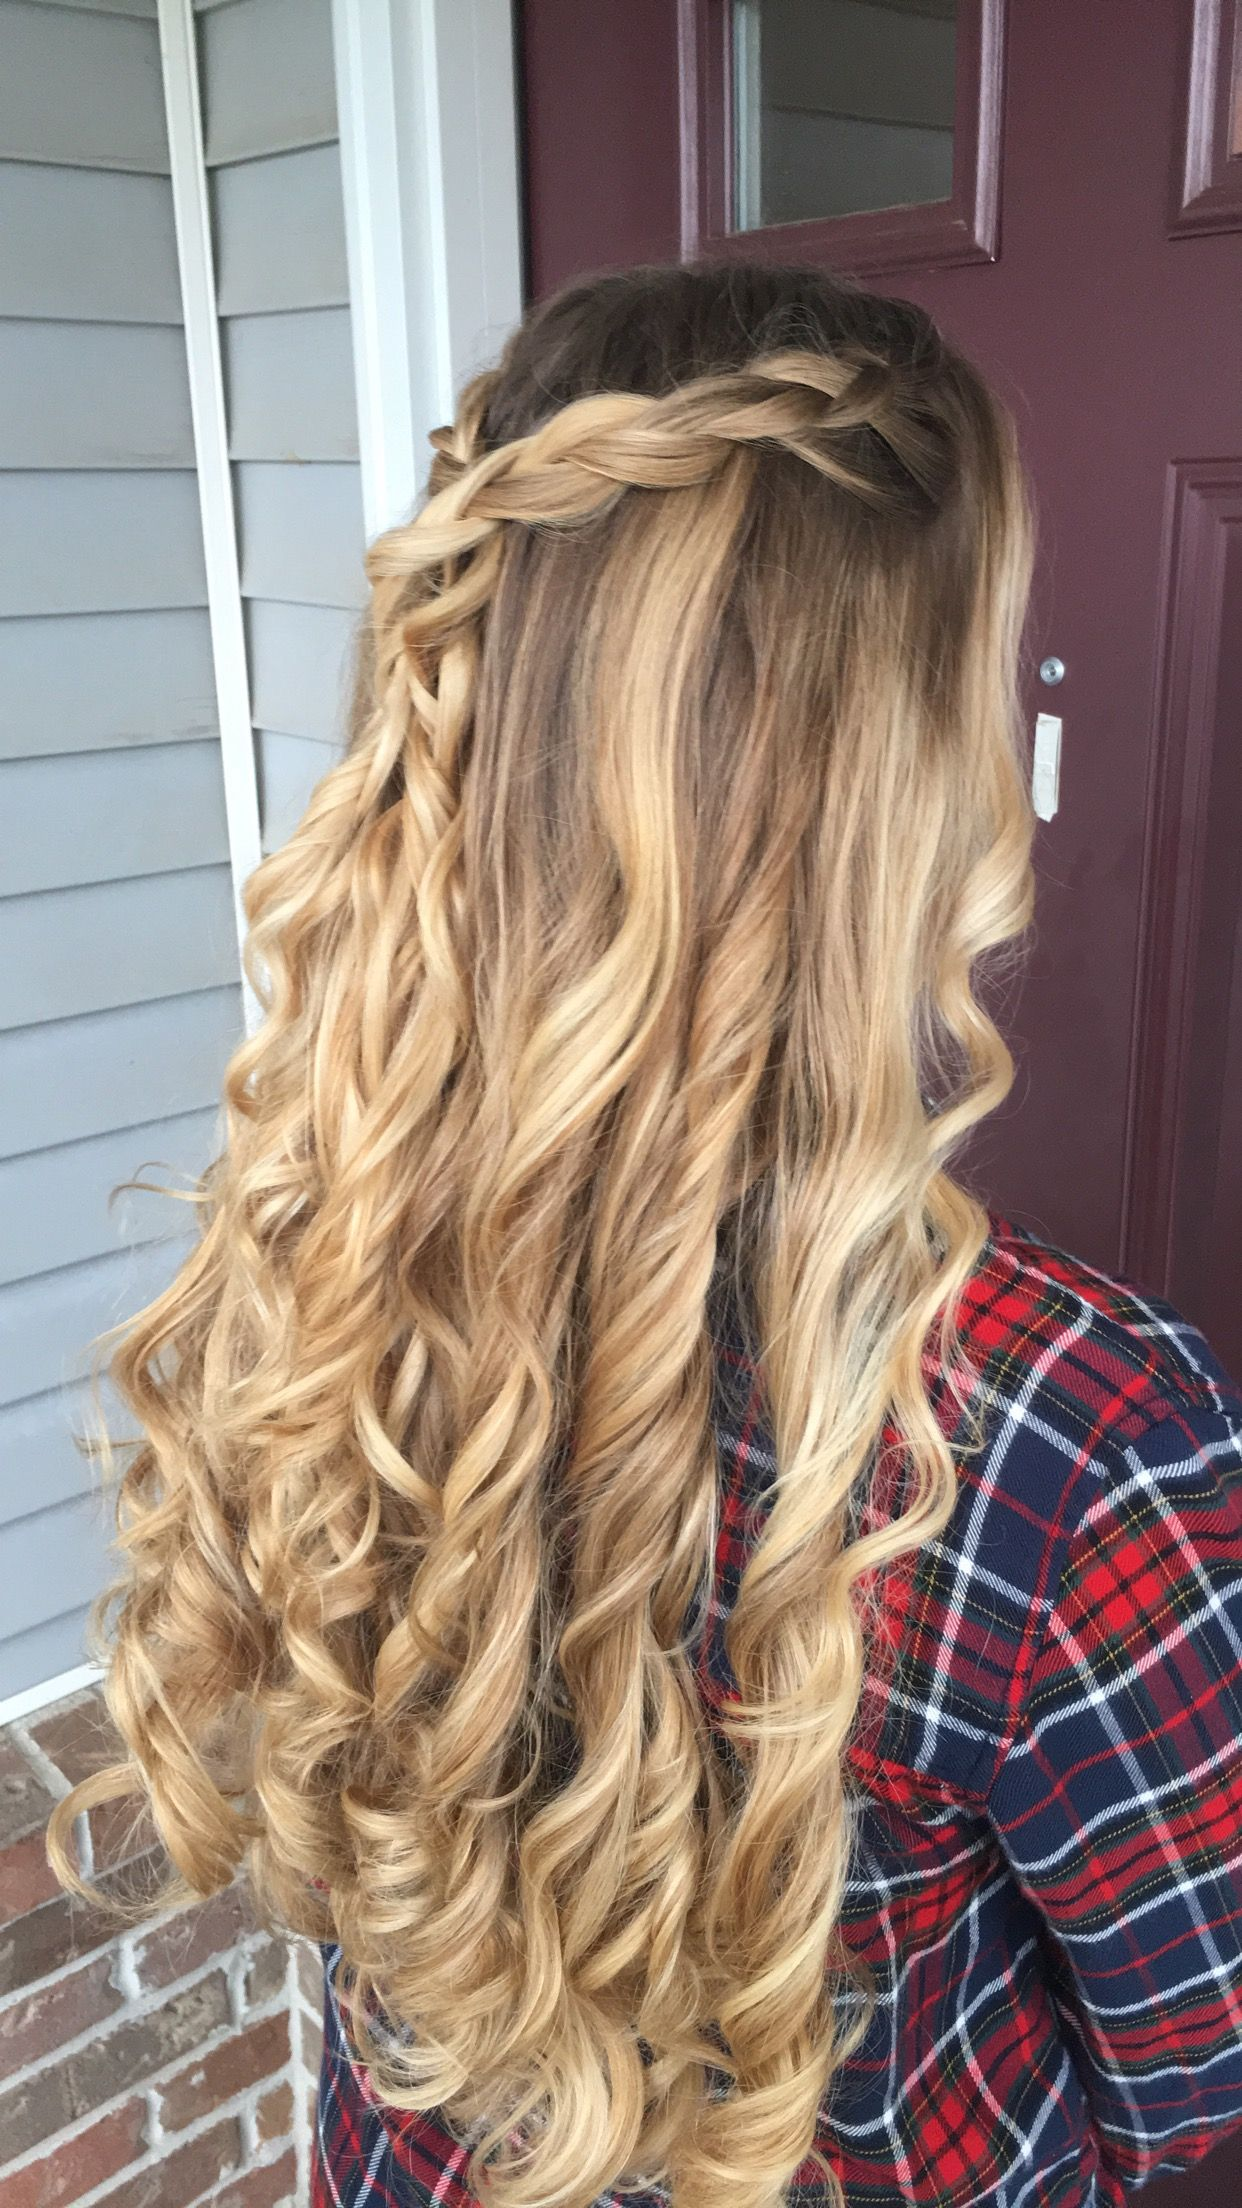 Hair Style By Allison Sheroski Hair Color By Tiffany Way Hair